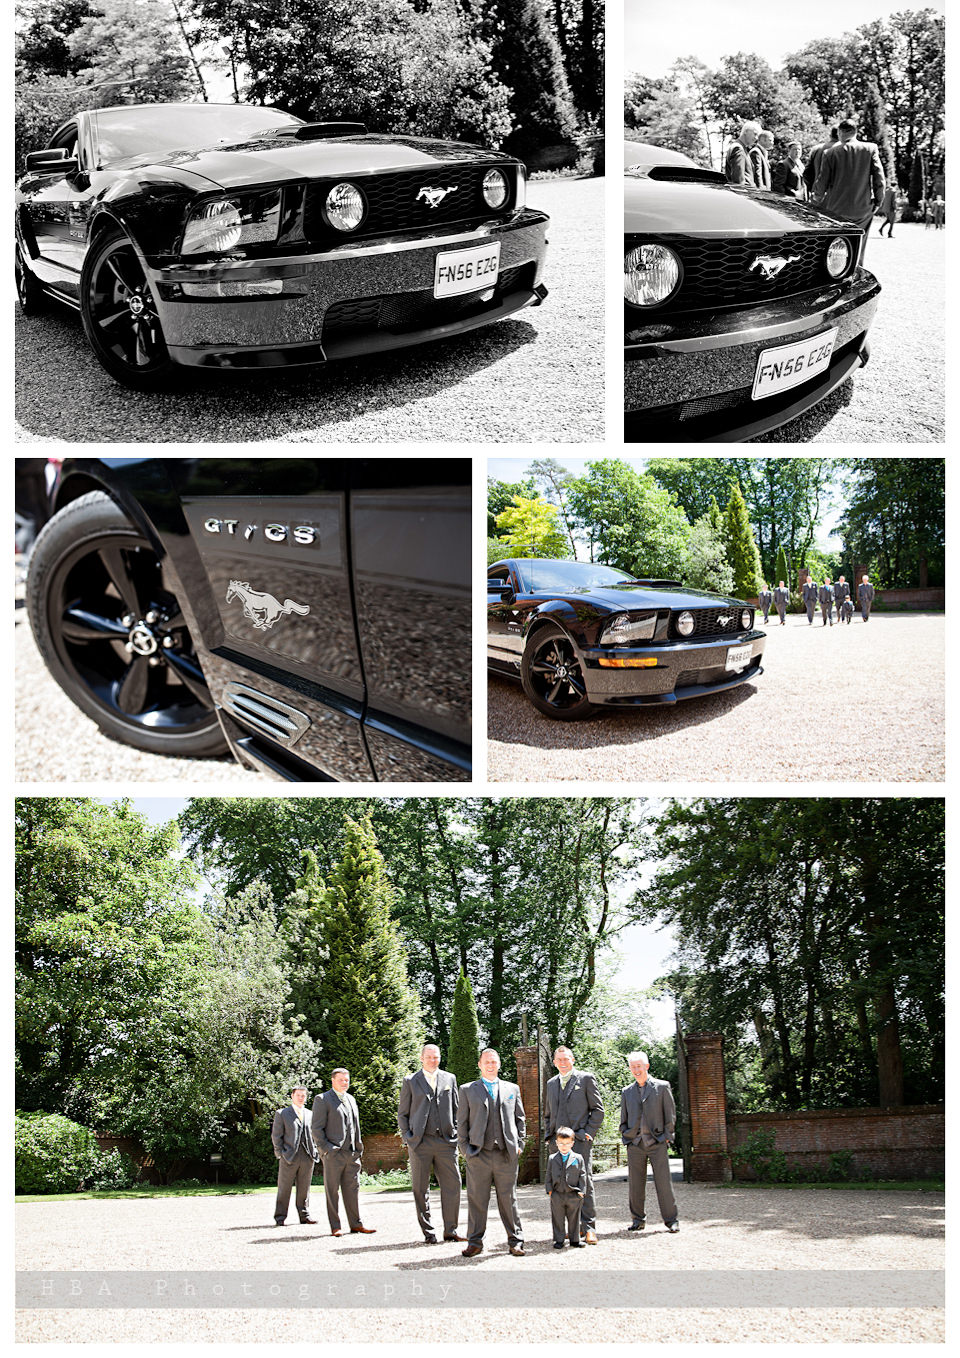 The wedding of Sam & Alan at New Place, Southampton. By contemporary photographers HBA Photography. The guys before the ceremony with their beautiful Mustang